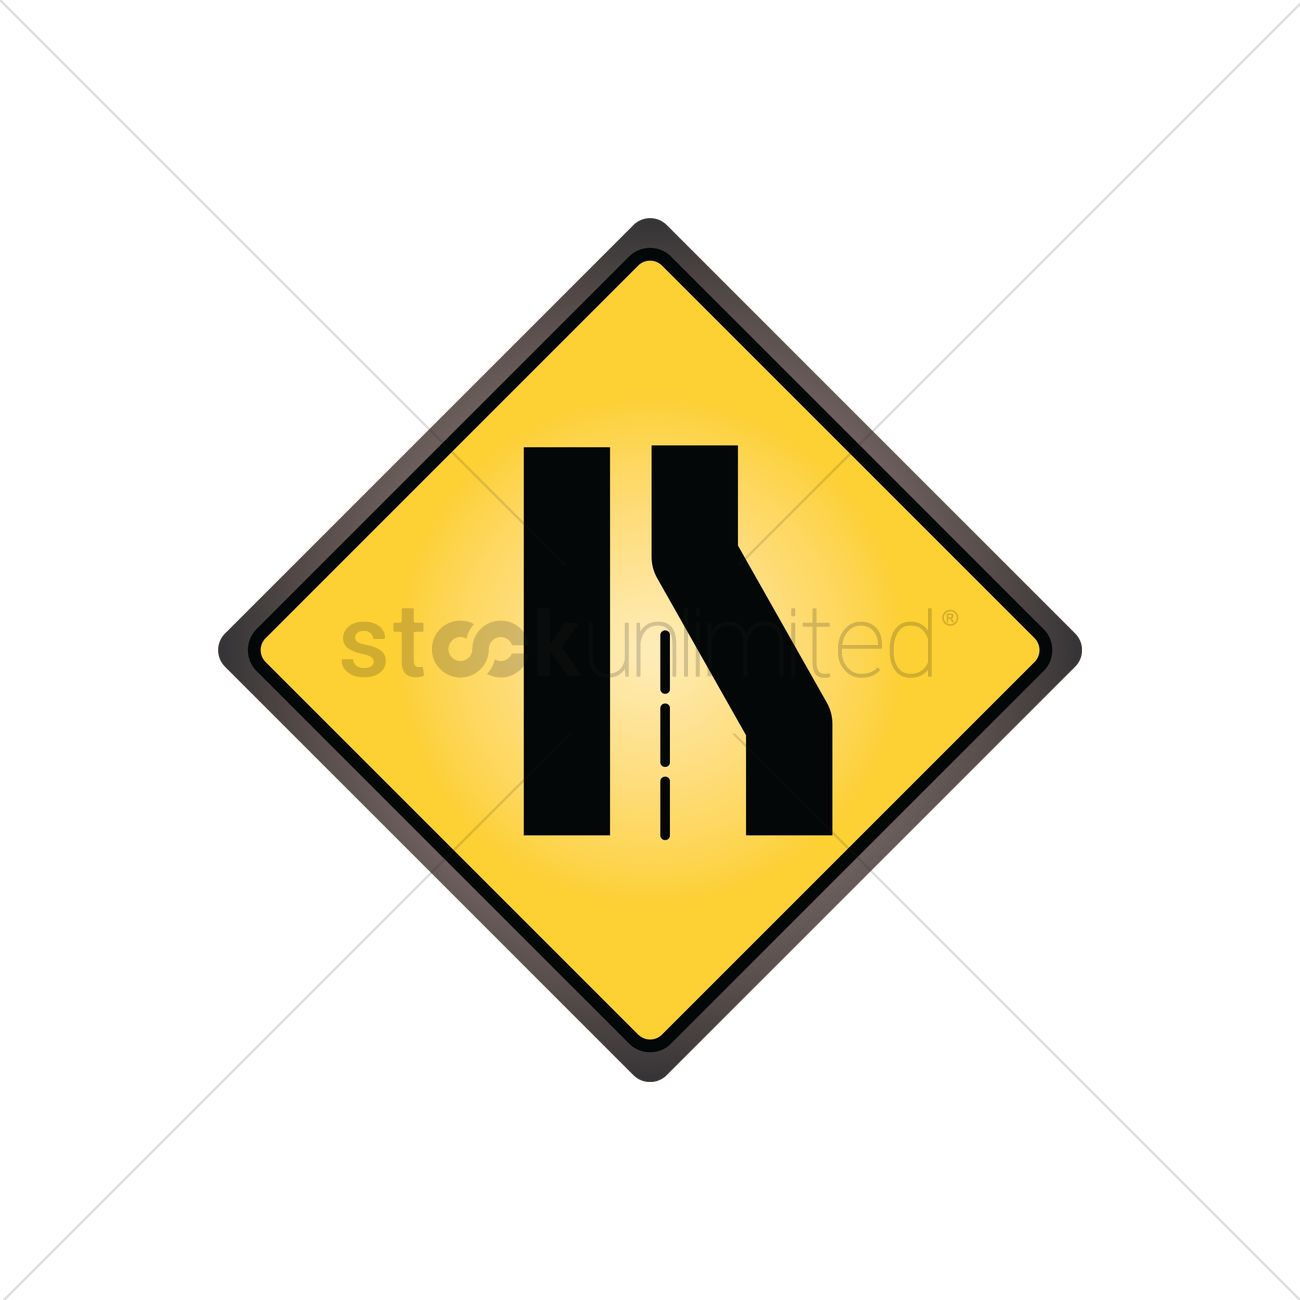 Right lane ends sign vector image 1545035 stockunlimited right lane ends sign vector graphic biocorpaavc